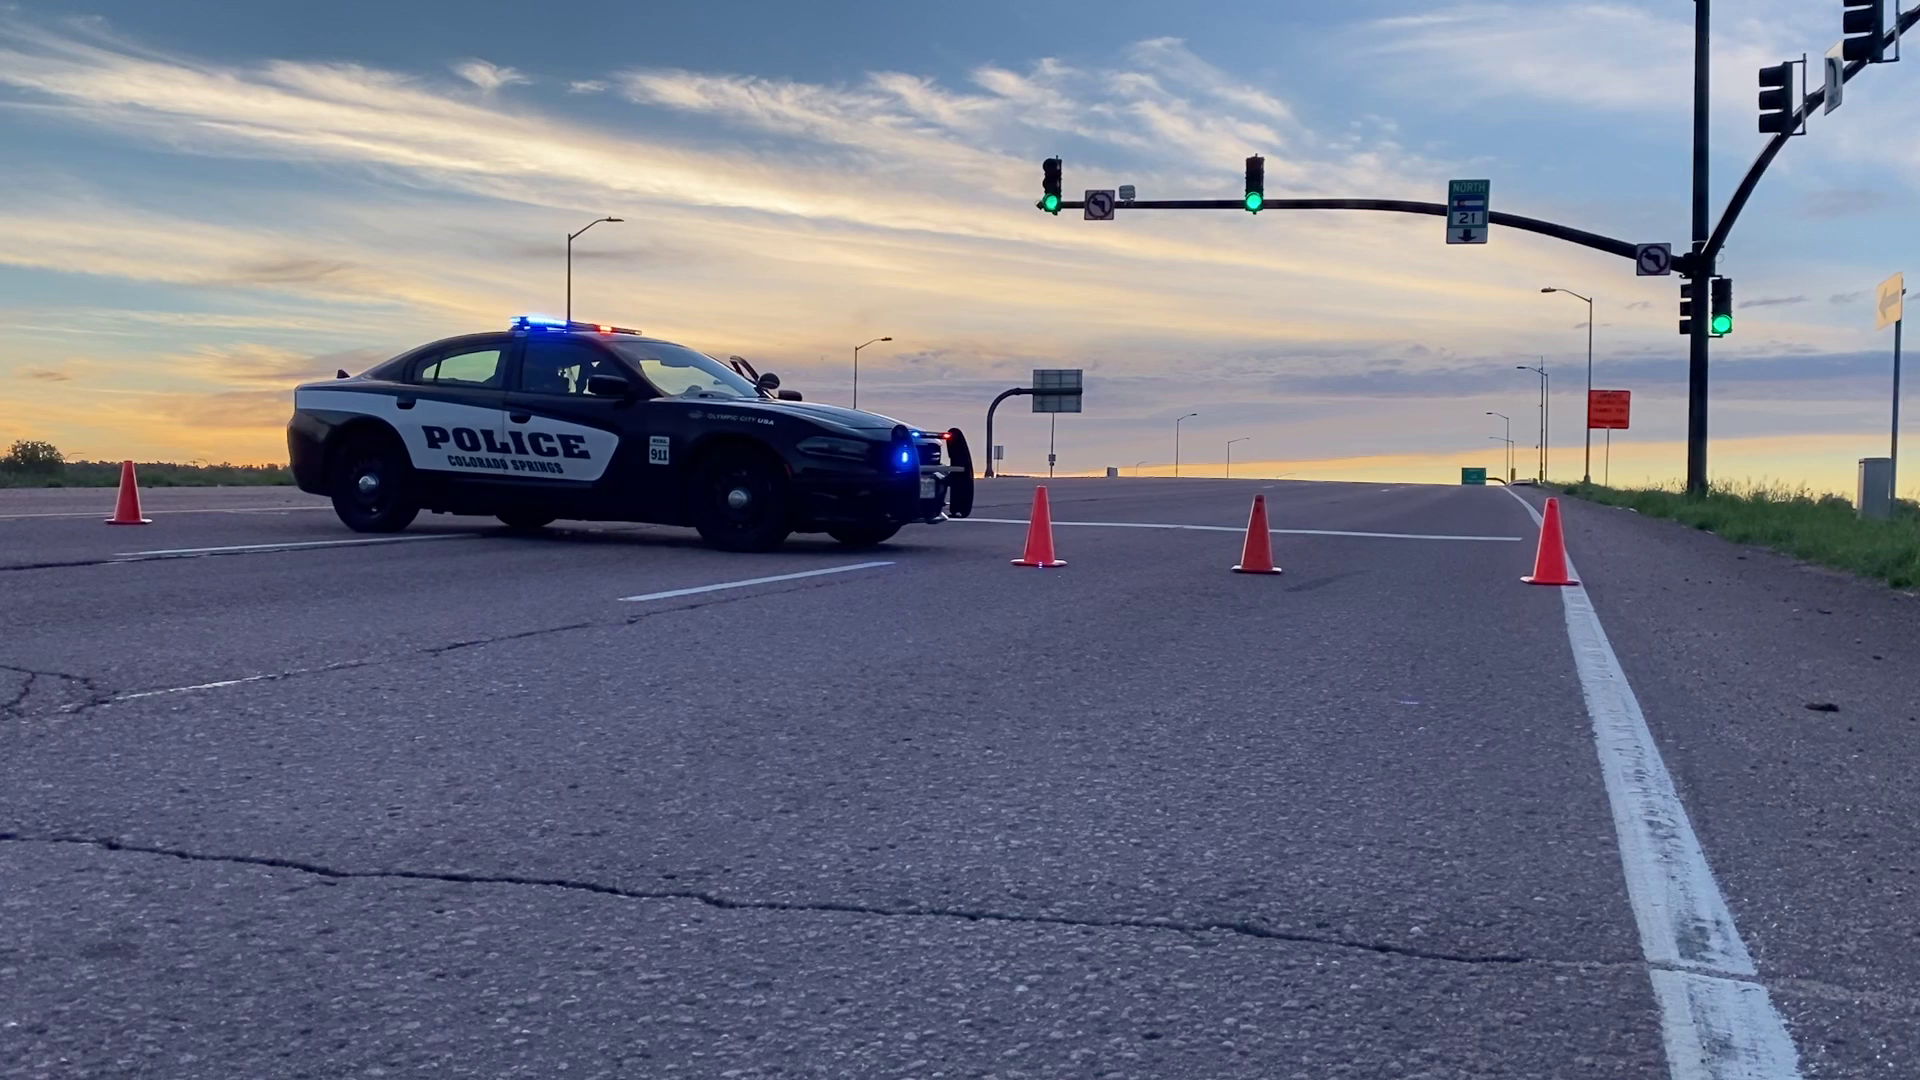 Police on the scene of a crash at Platte Avenue and Powers Boulevard in Colorado Springs Sunday morning. / Joe Swanson - FOX21 News